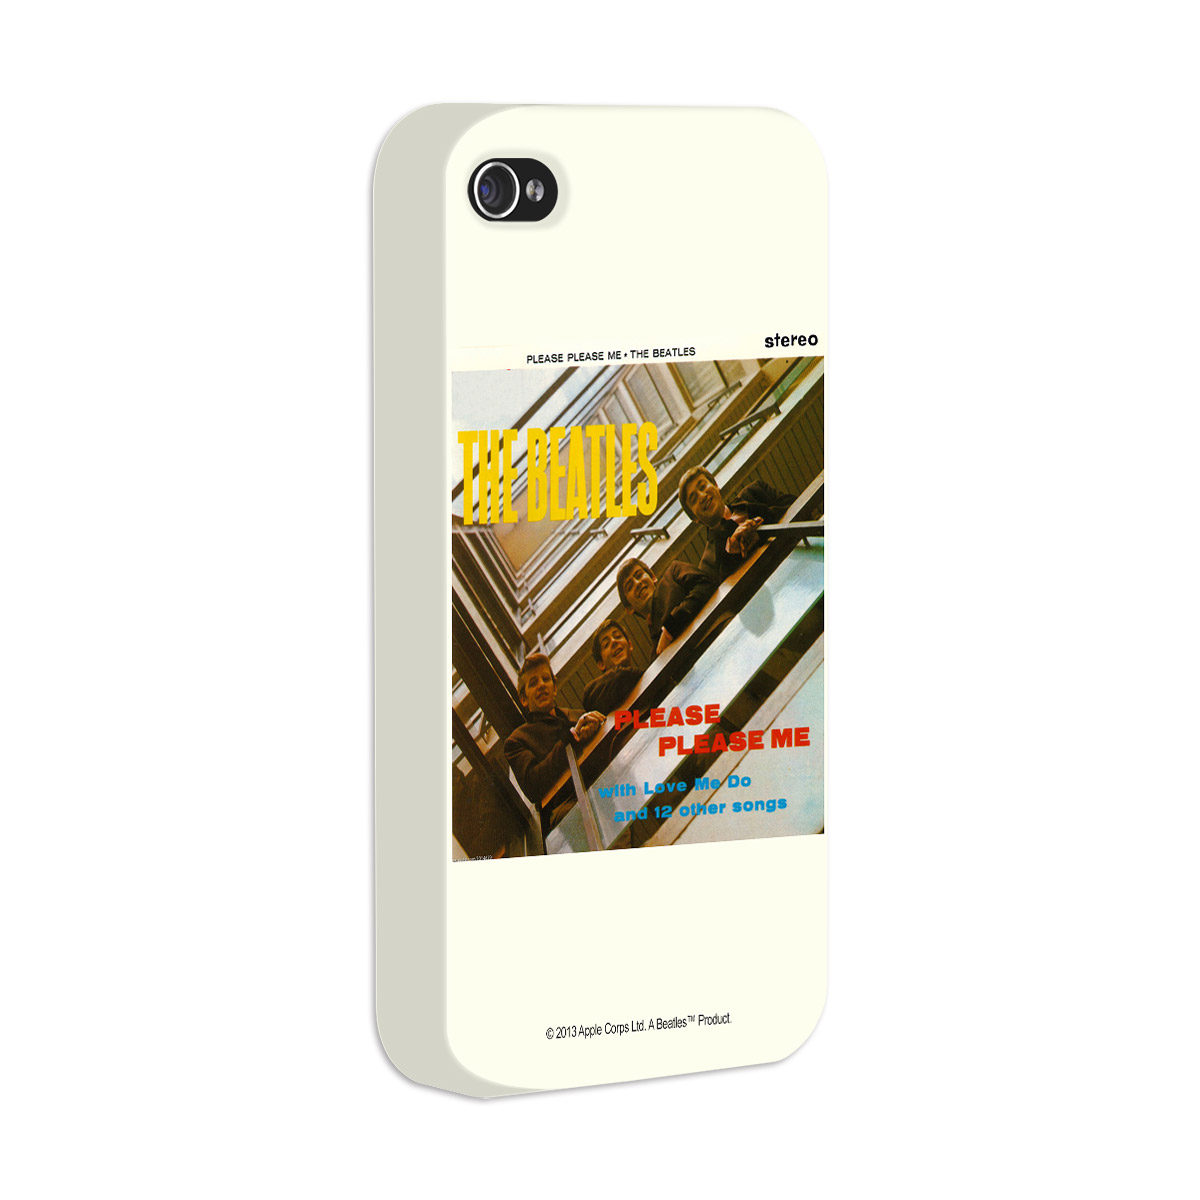 Capa de iPhone 4/4S The Beatles Please Please Me